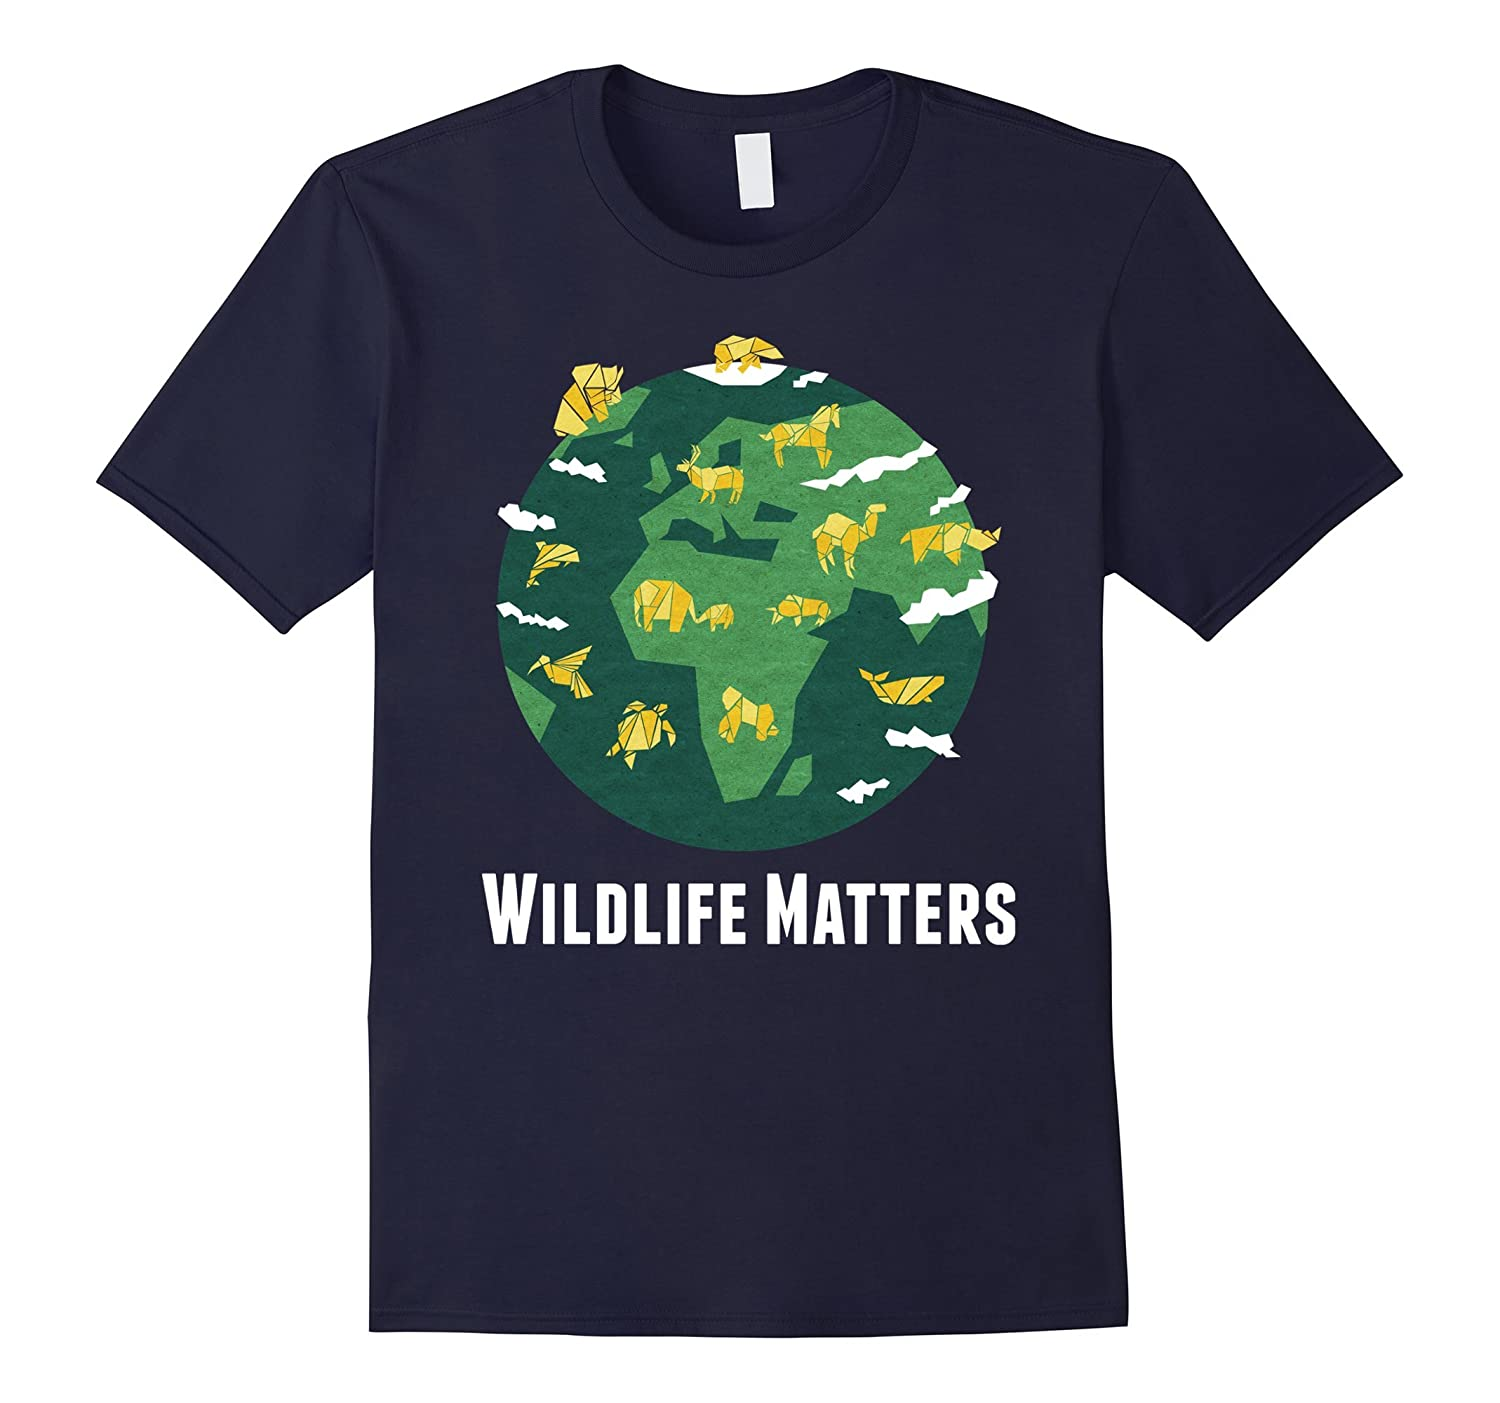 Wildlife Matters T Shirt Origami Animal Style Tee Anz Anztshirt